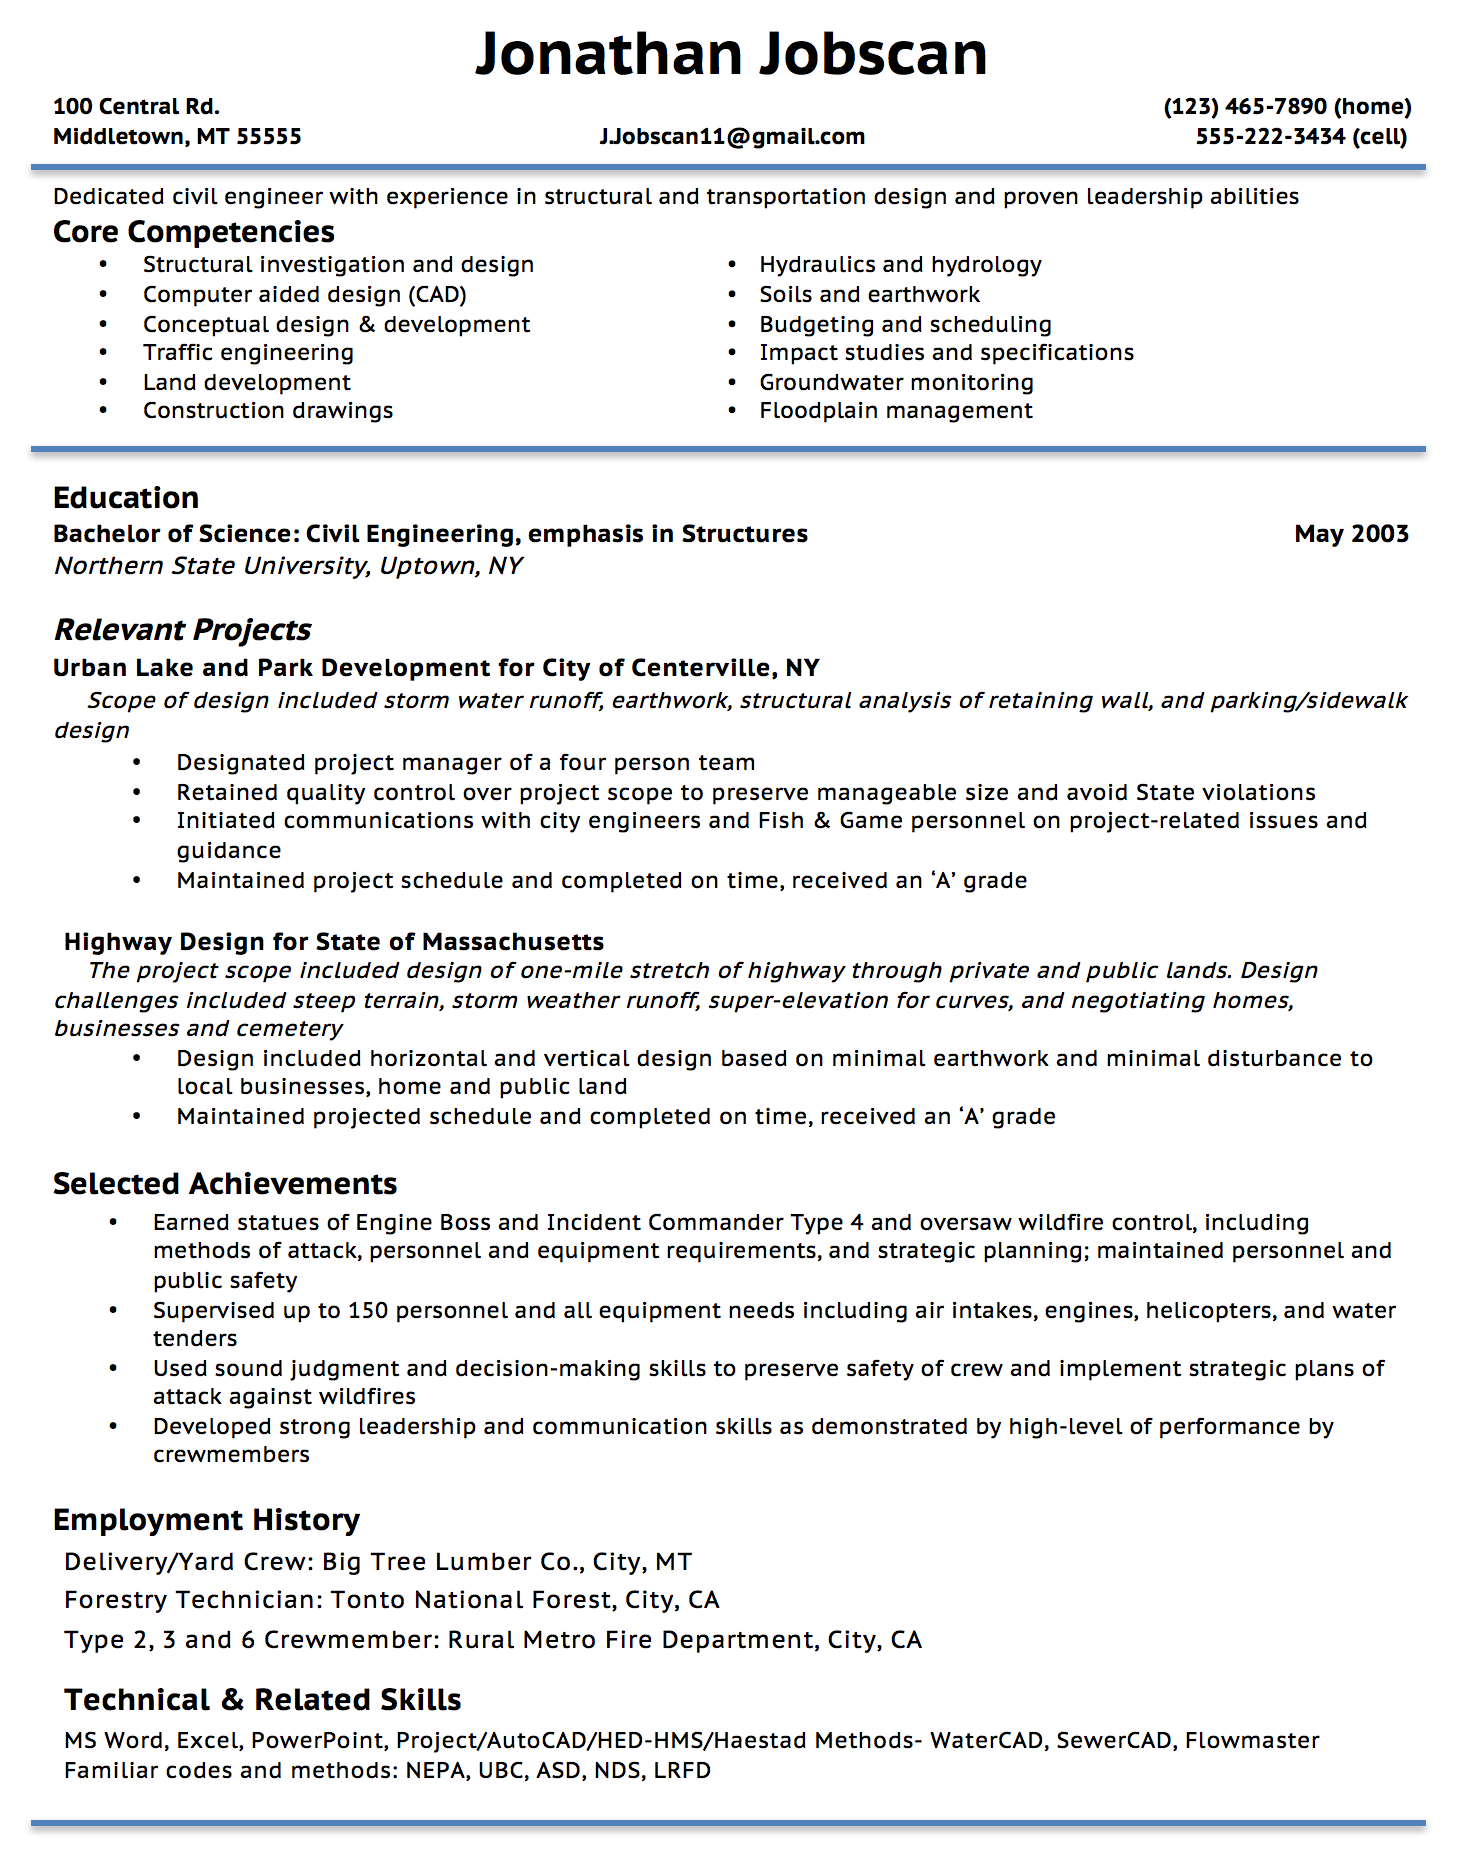 Opposenewapstandardsus  Prepossessing Resume Writing Guide  Jobscan With Heavenly Example Of A Functional Resume Format With Beauteous Images Of A Resume Also Examples Of Resumes For College Students In Addition It Auditor Resume And Resume Team Player As Well As Certified Professional Resume Writers Additionally Reference Format Resume From Jobscanco With Opposenewapstandardsus  Heavenly Resume Writing Guide  Jobscan With Beauteous Example Of A Functional Resume Format And Prepossessing Images Of A Resume Also Examples Of Resumes For College Students In Addition It Auditor Resume From Jobscanco